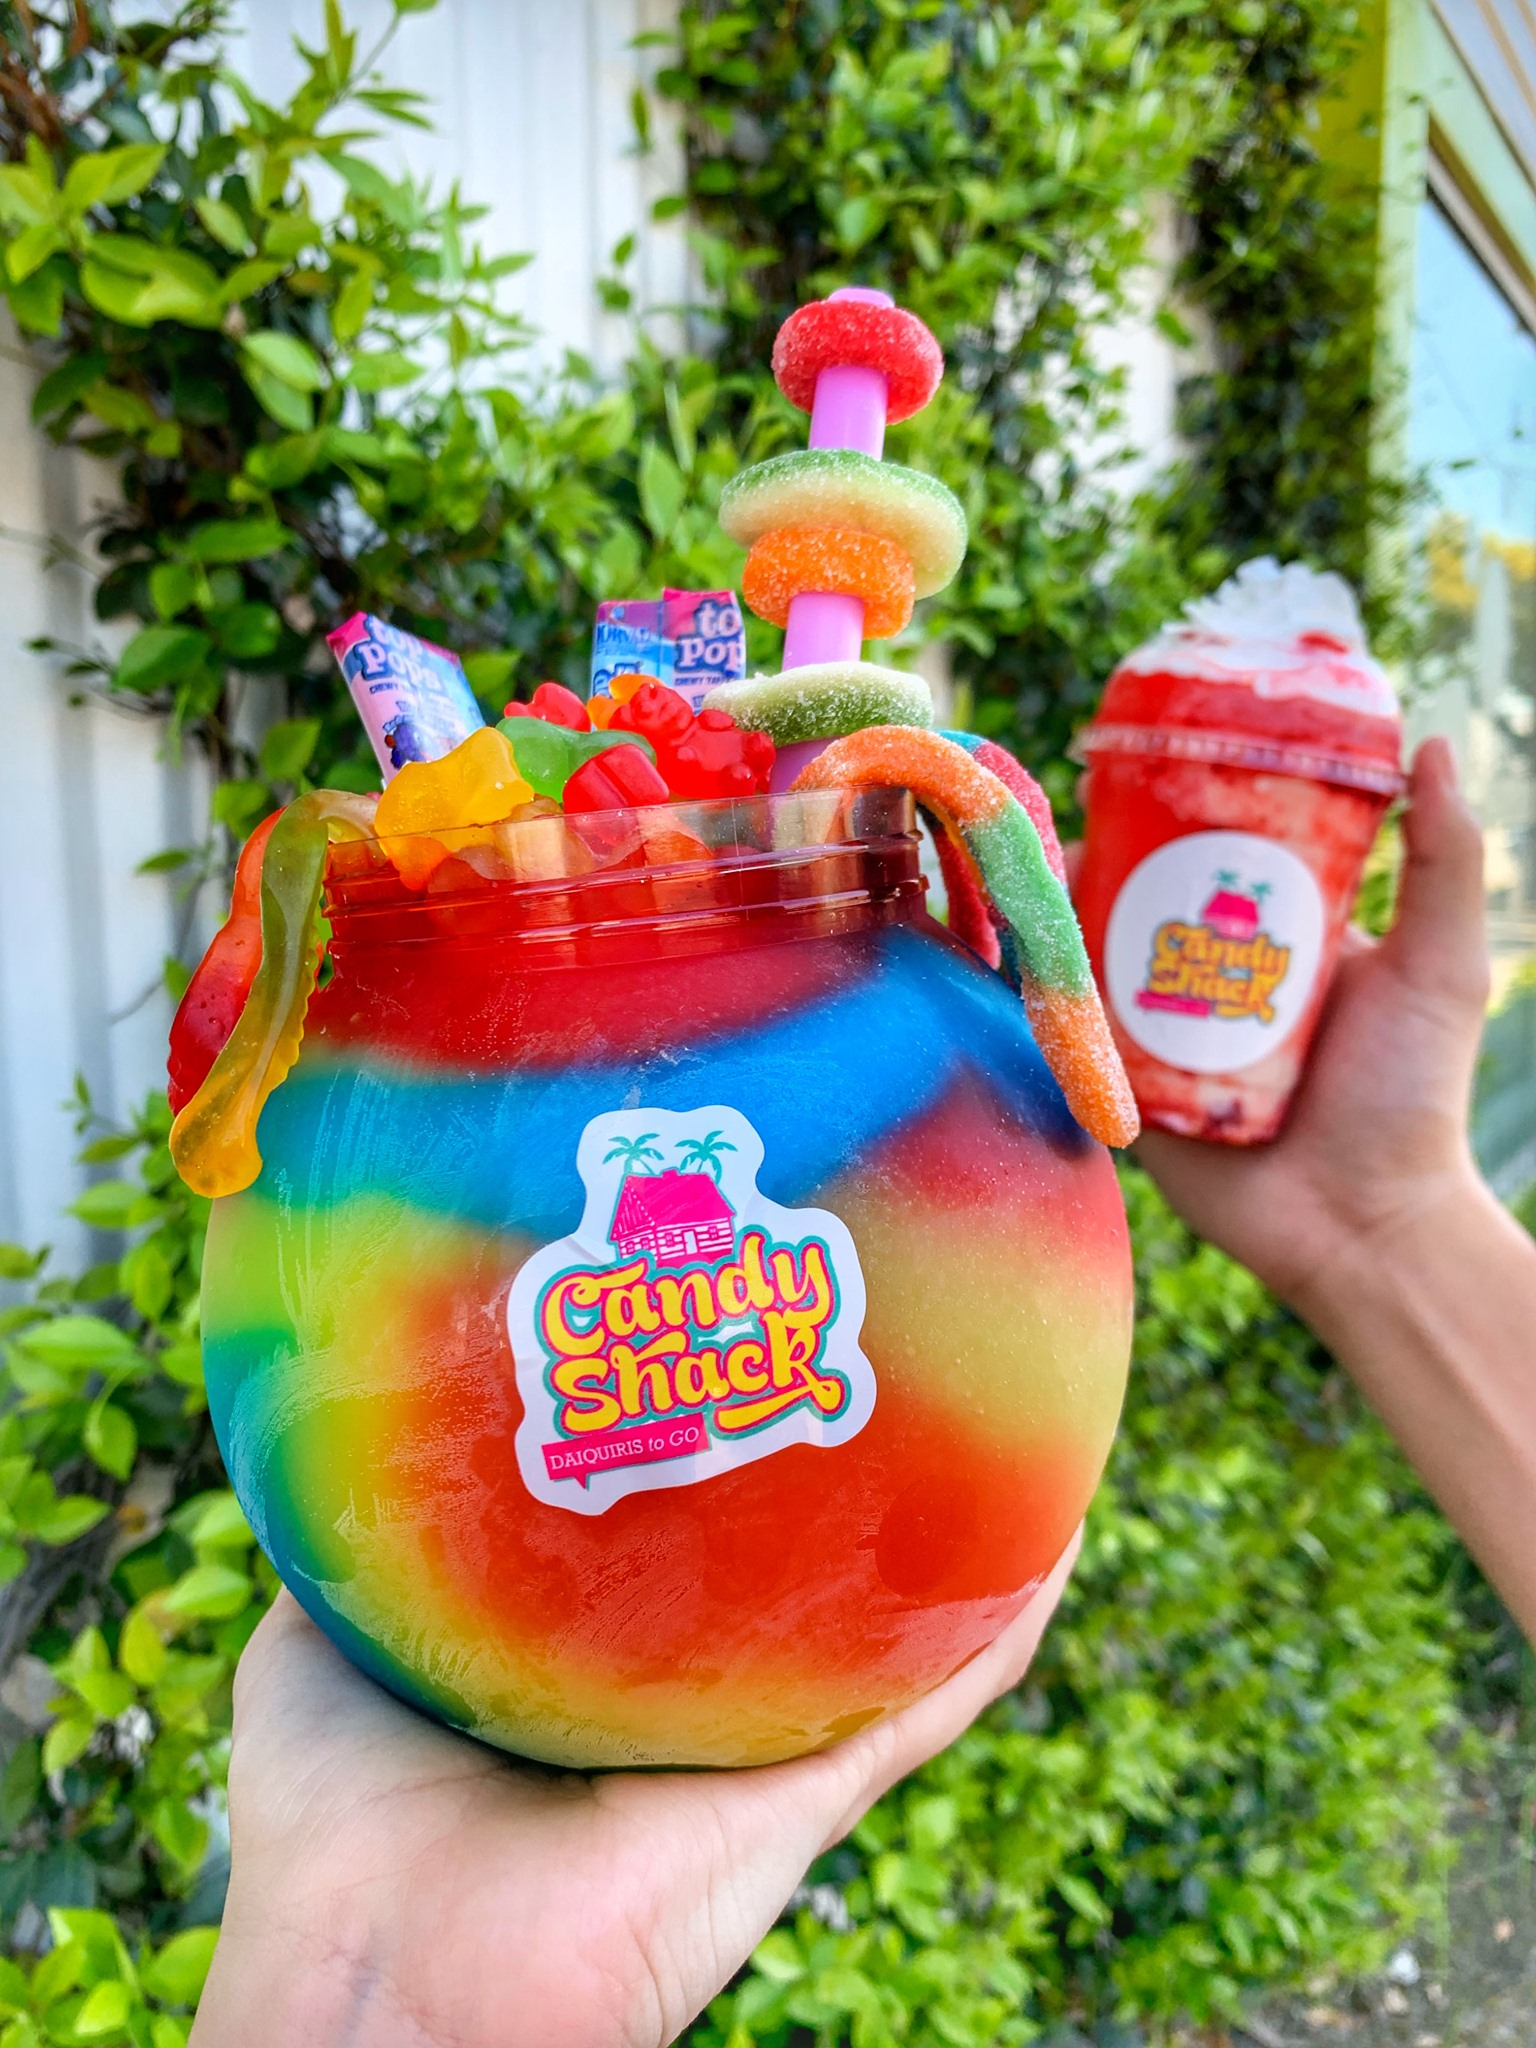 Candy Shack's Fishbowls Full of Boozy Frozen Daiquiri Are En Route to South Houston